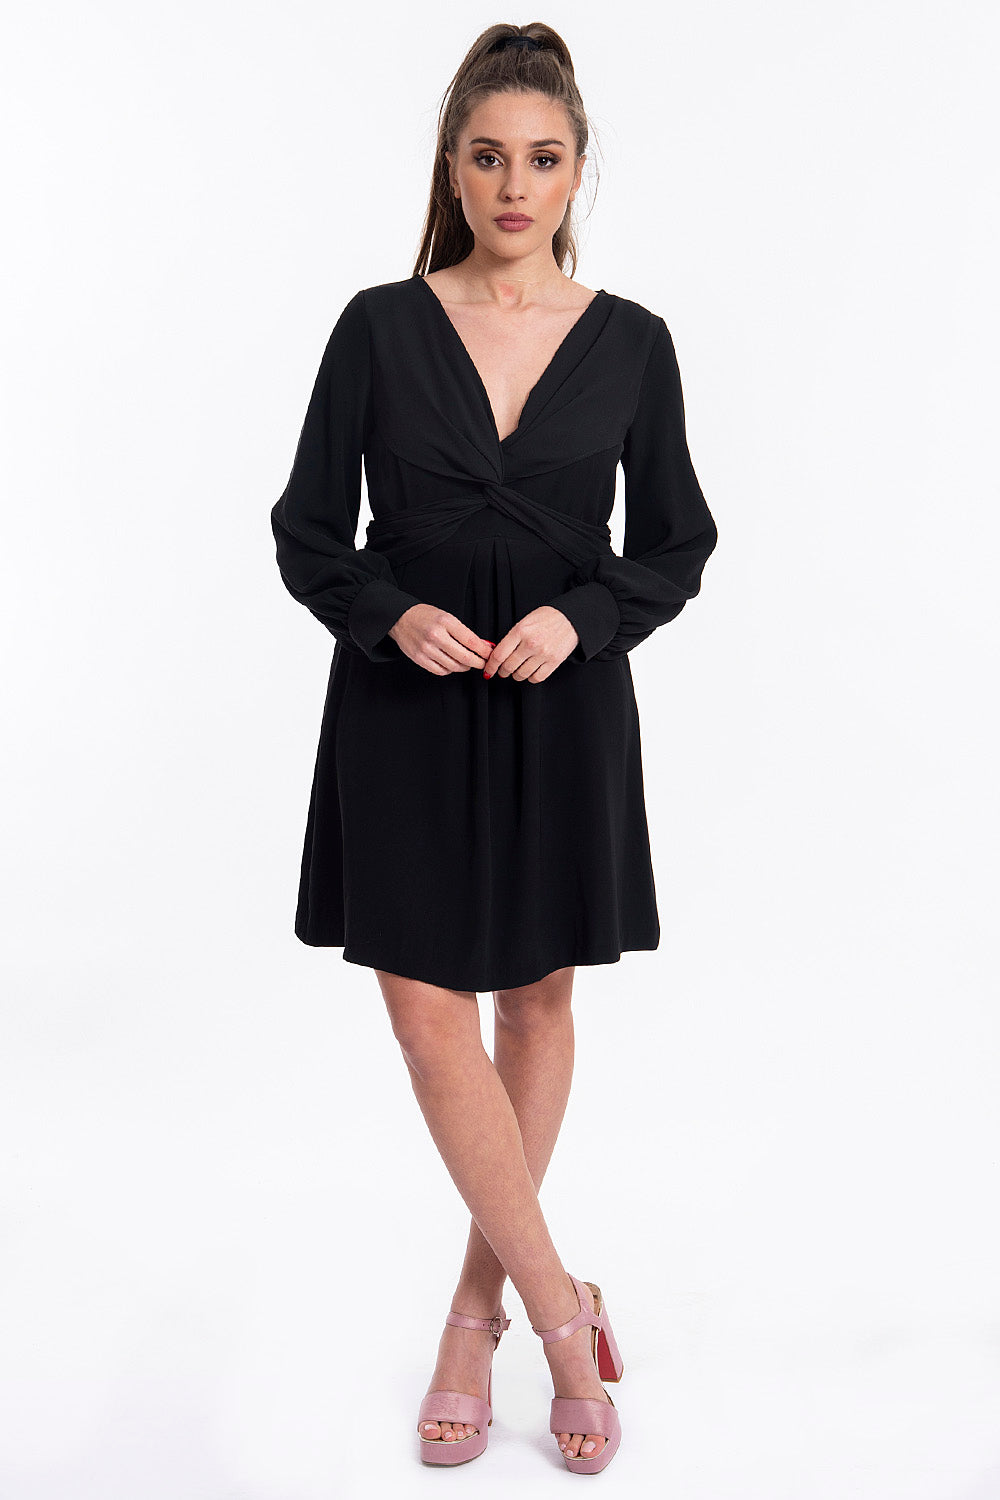 Tensione in mini plung dress with long sleeves